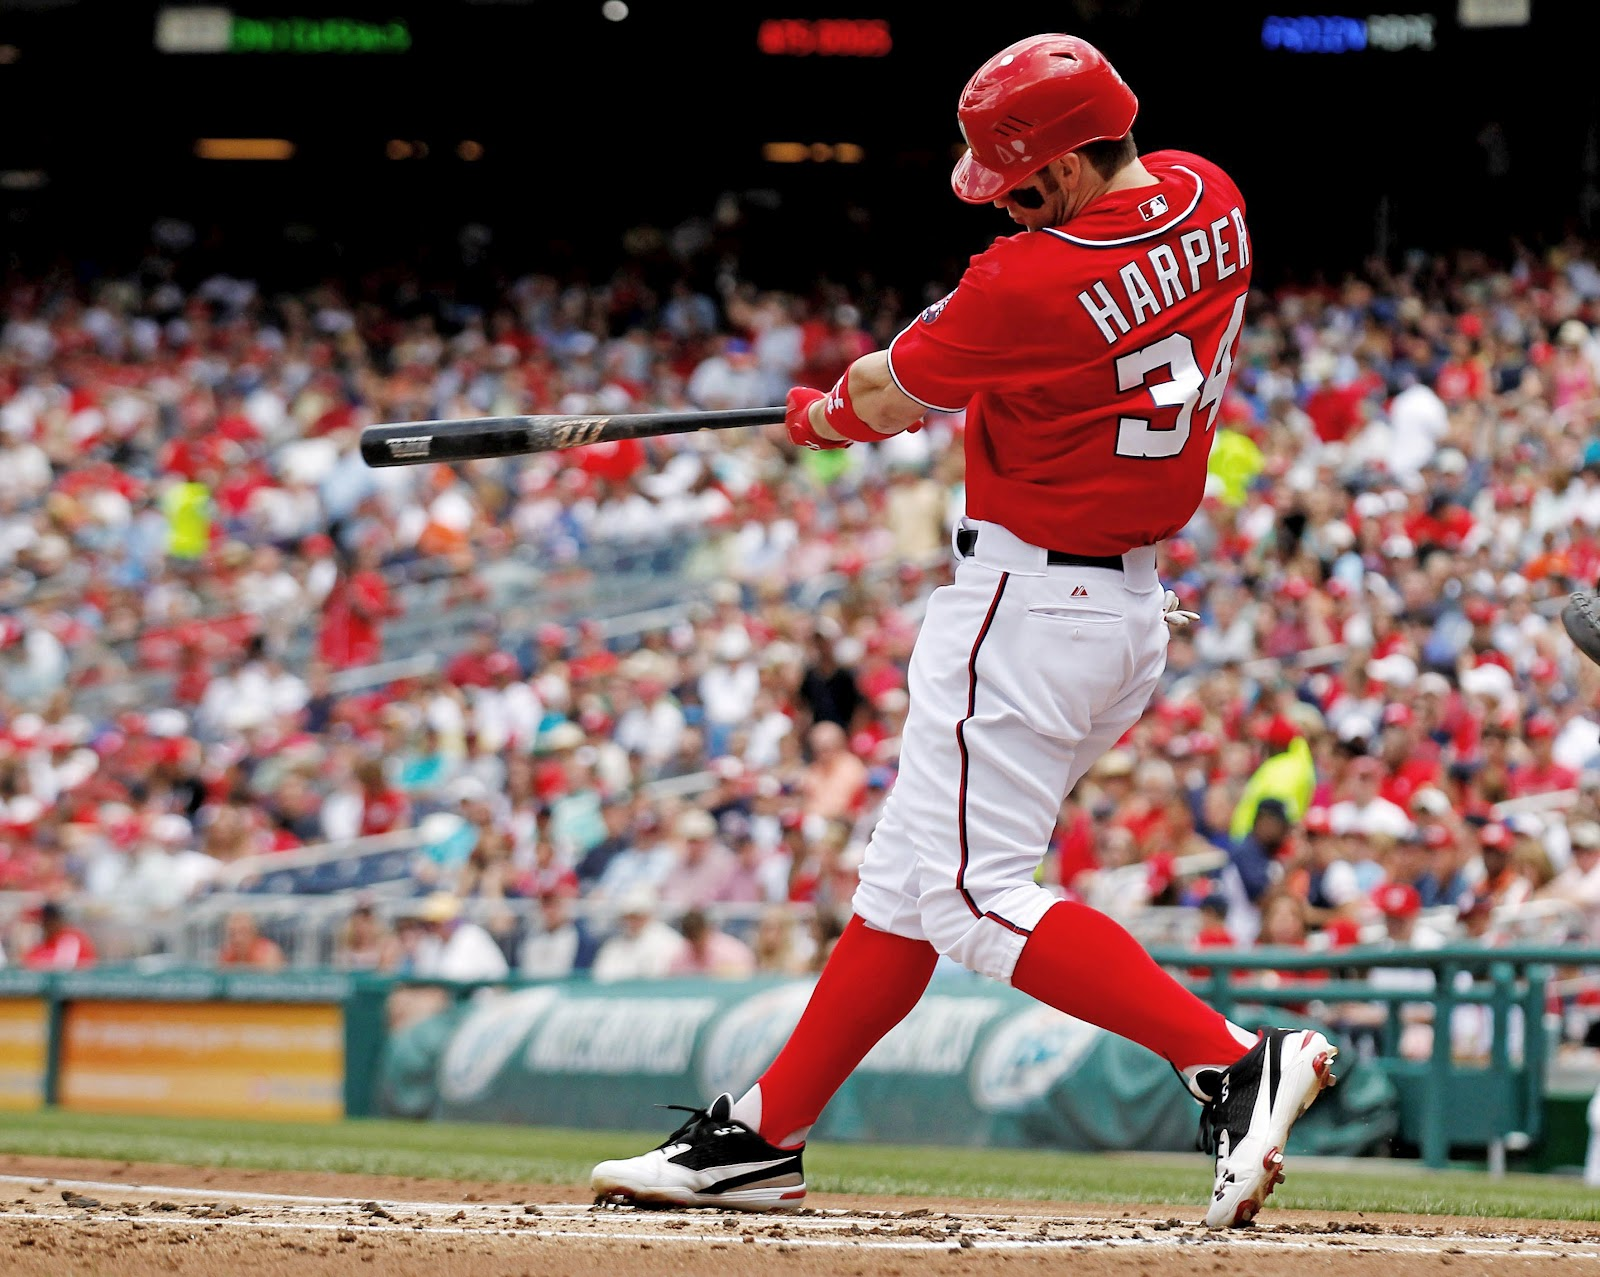 Bryce Harper Covers HD wallpapers   Bryce Harper Covers 1600x1277